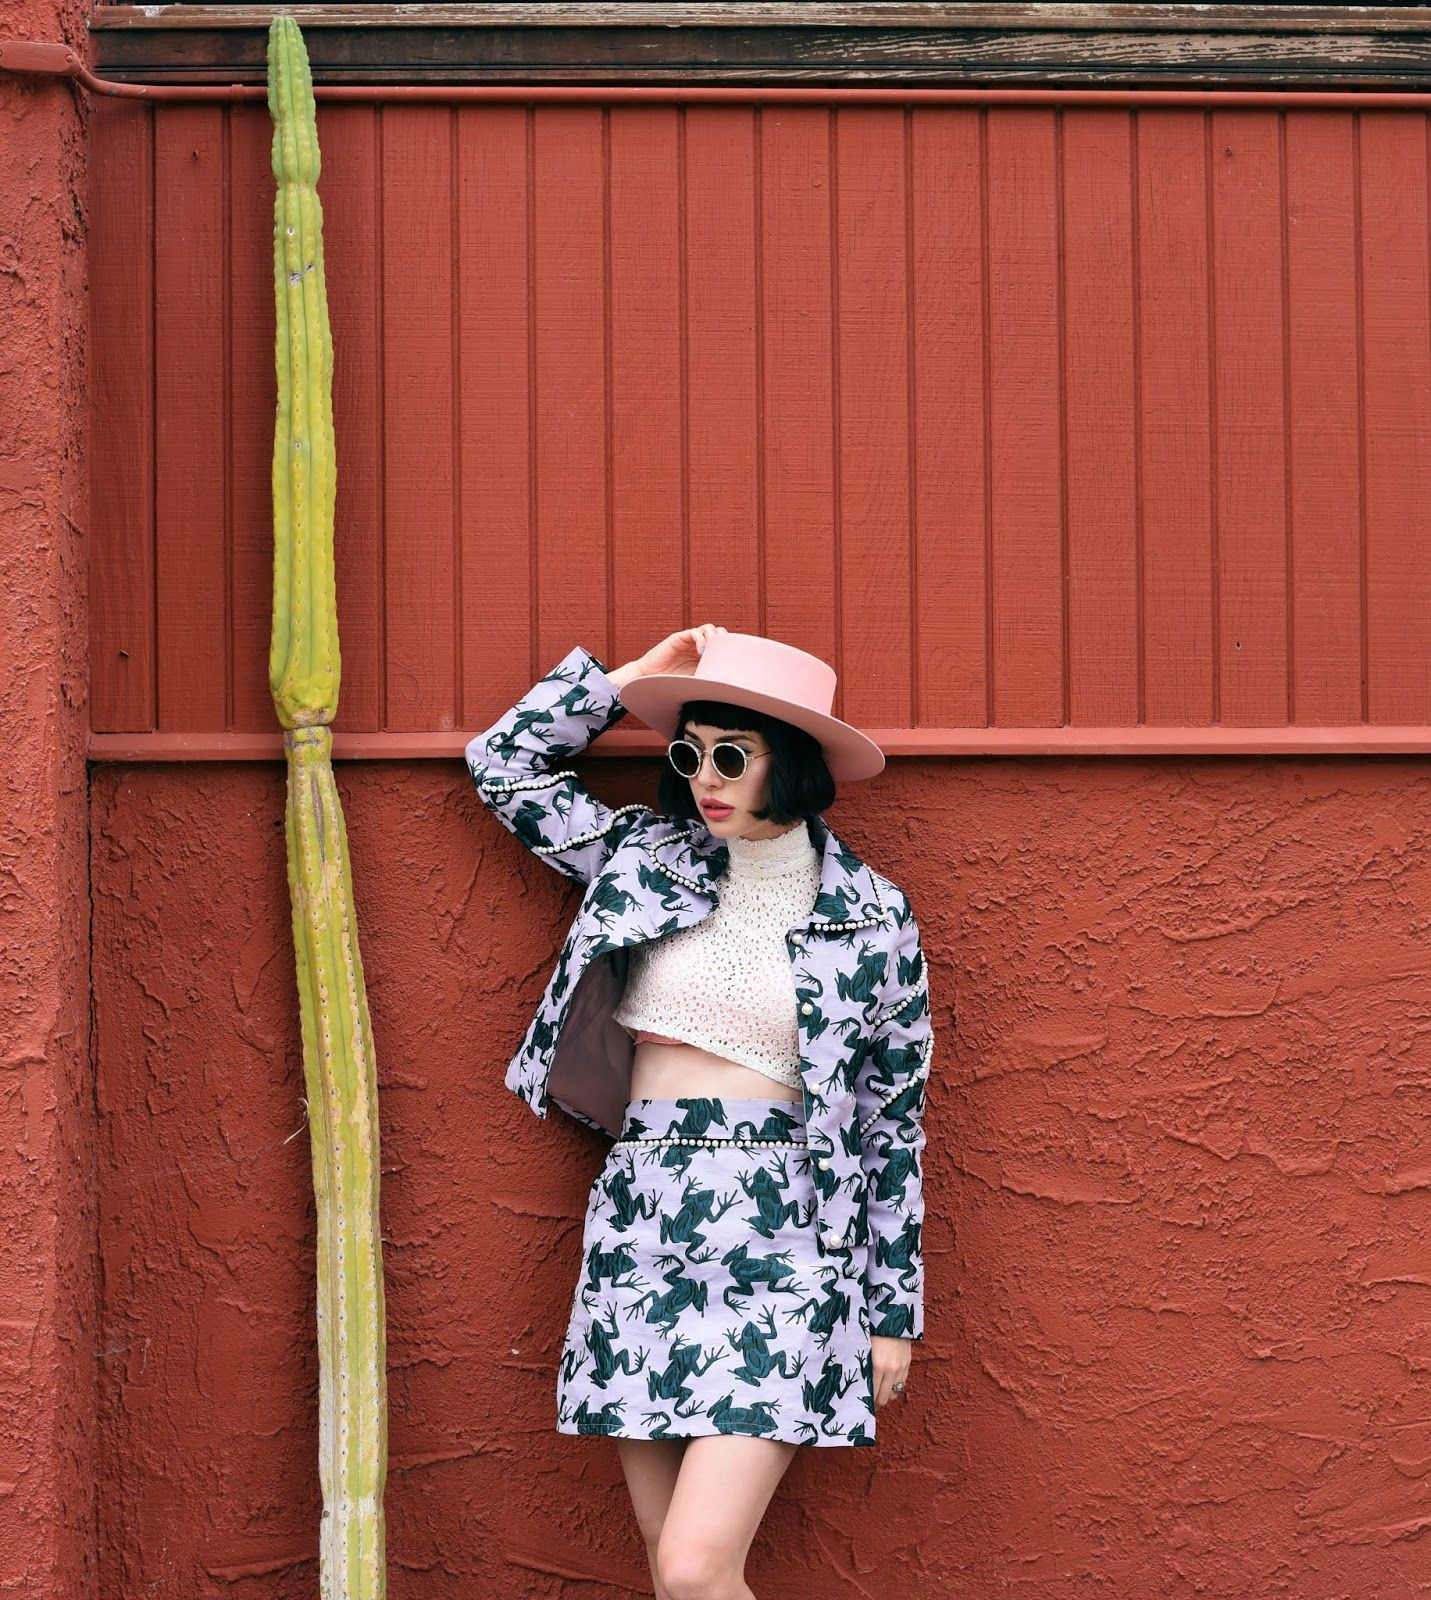 A Fashion Nerd: Western Cactuses // (With images